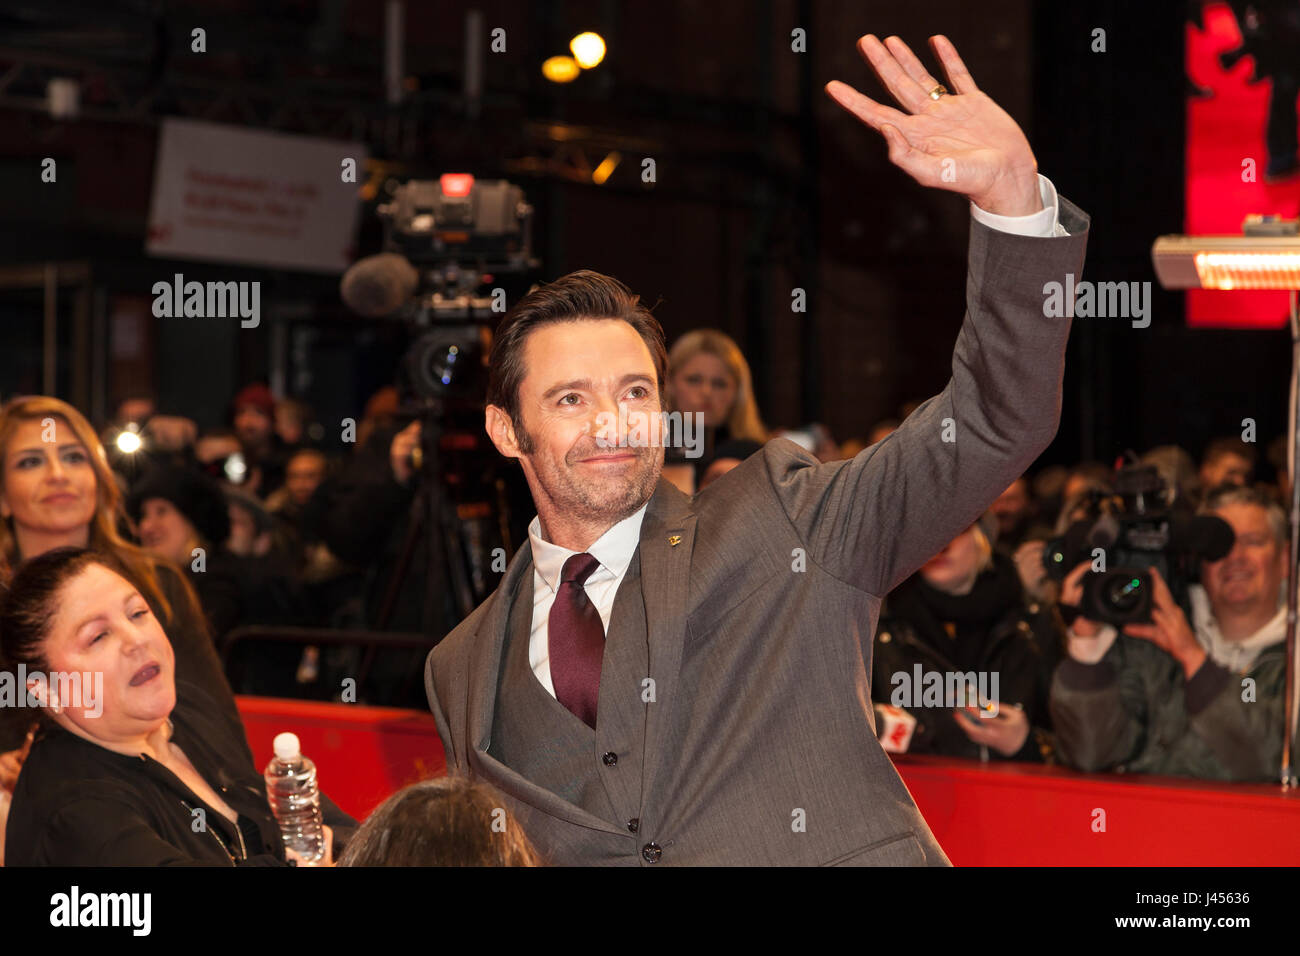 Actor Hugh Jackman at Berlinale 2017 - Stock Image